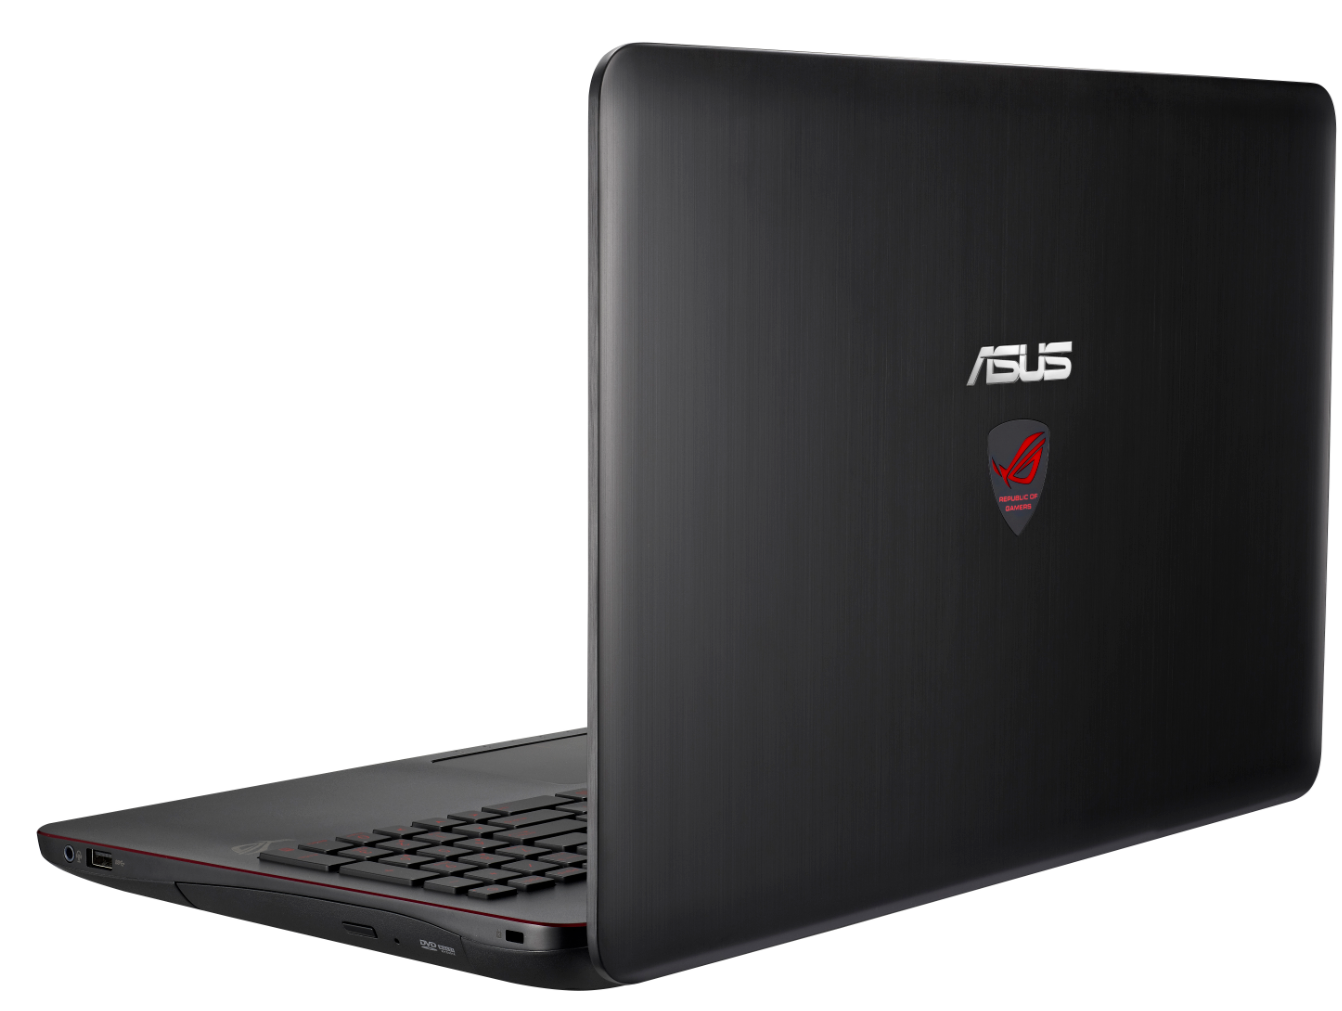 asus-g551jk-cn074h-1560-full-hd-intel-core-i7-4710hq-16gb-win-81-notebook